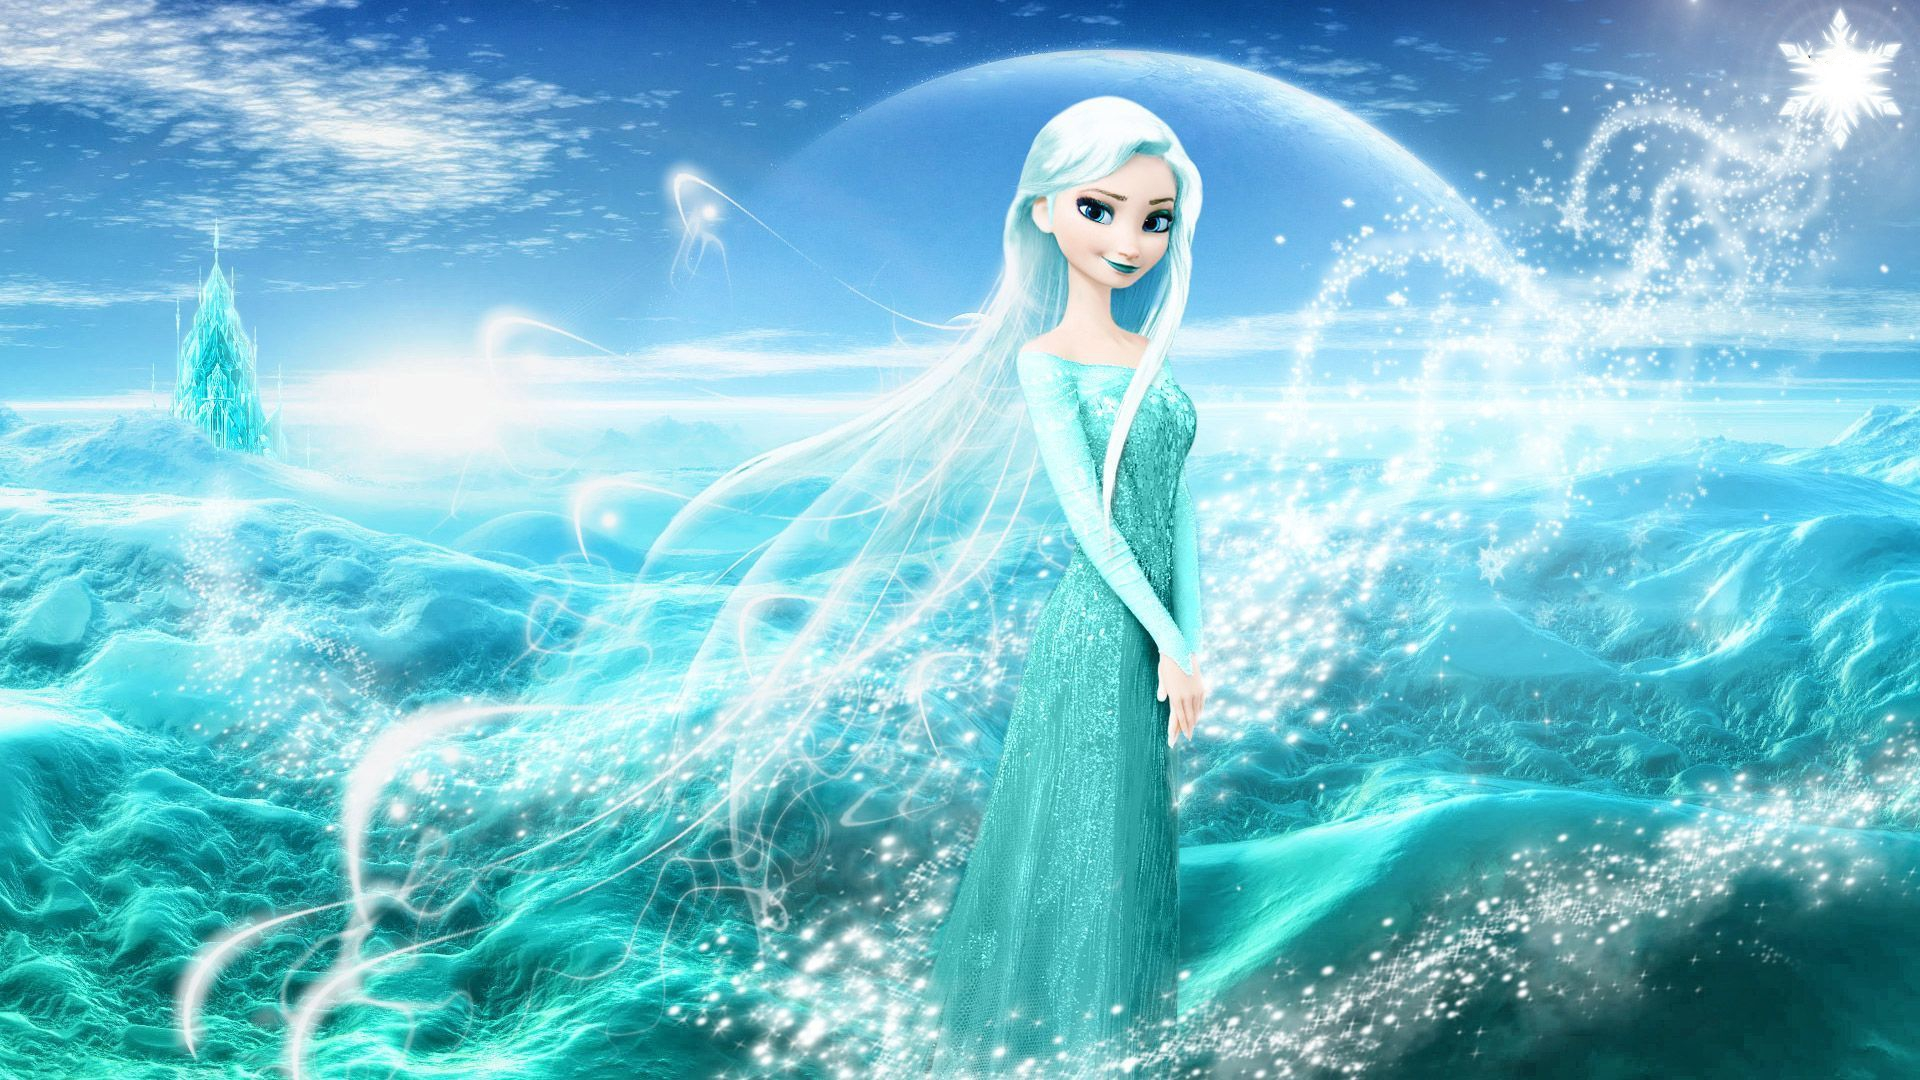 frozen movie wallpapers hd facebook timeline covers 1920x1080